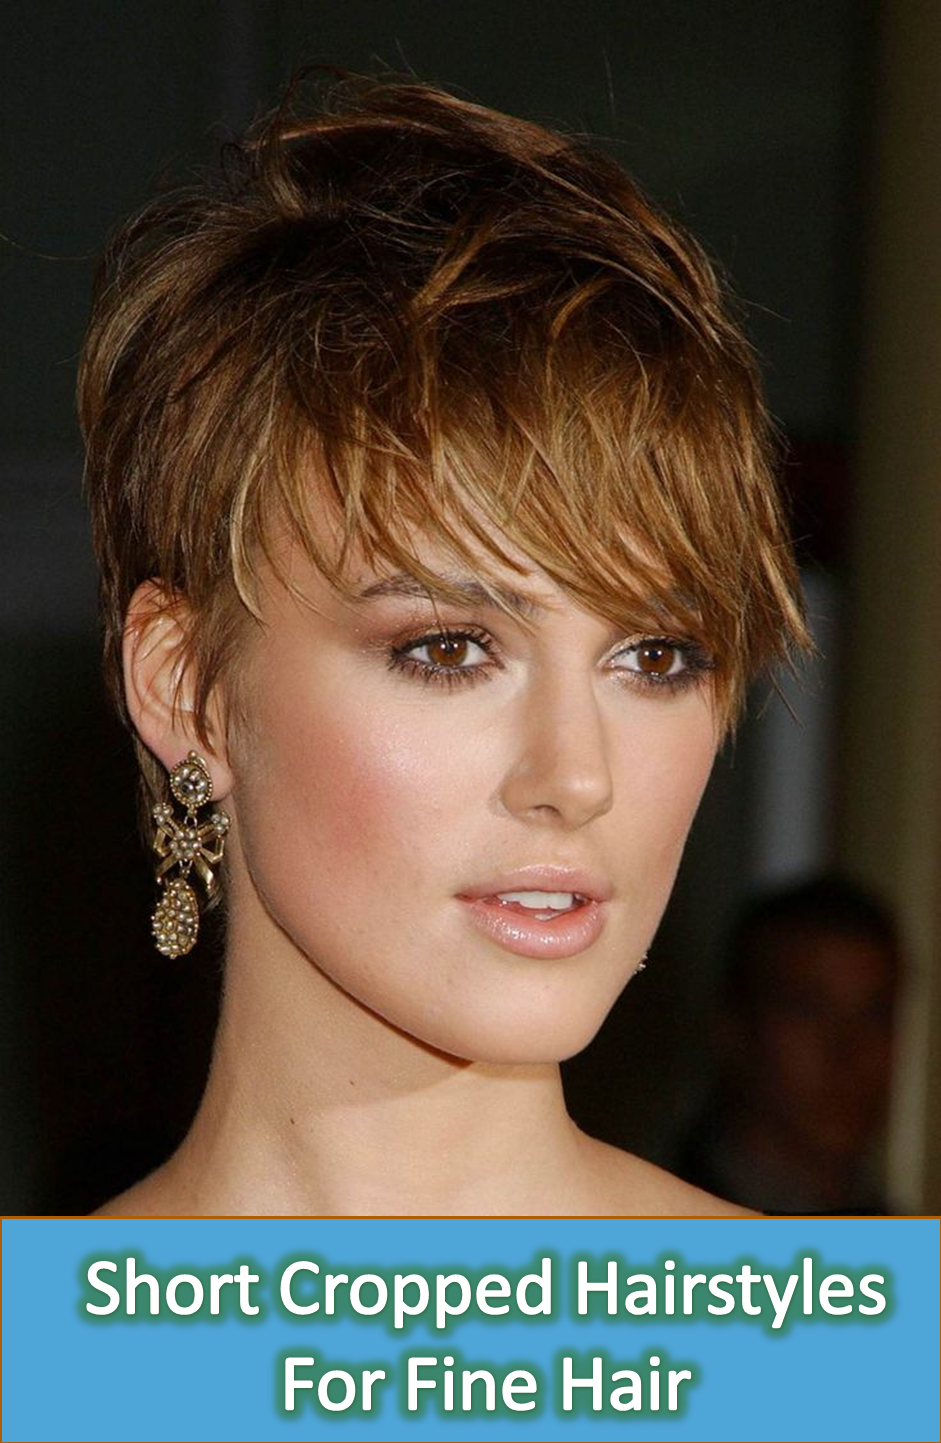 short cropped hairstyles for fine hair : hairstyles for